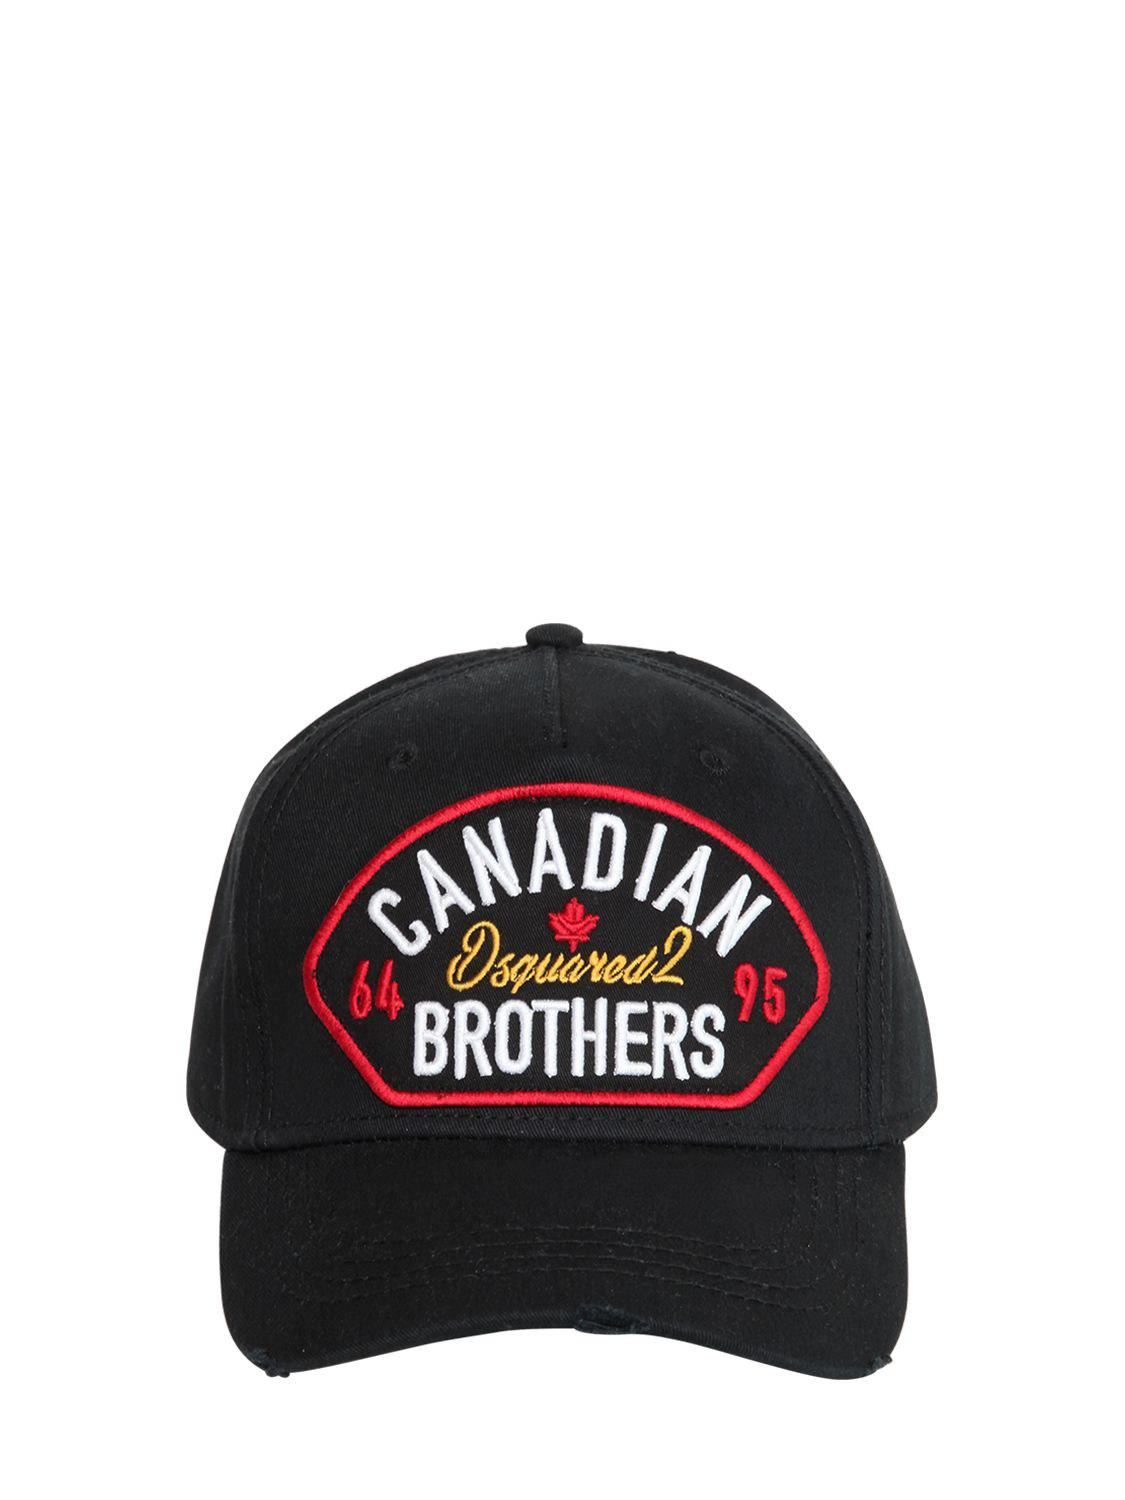 DSquared² - Black Canadian Brothers Patch Baseball Hat for Men - Lyst. View  fullscreen 38a5bf6124d2